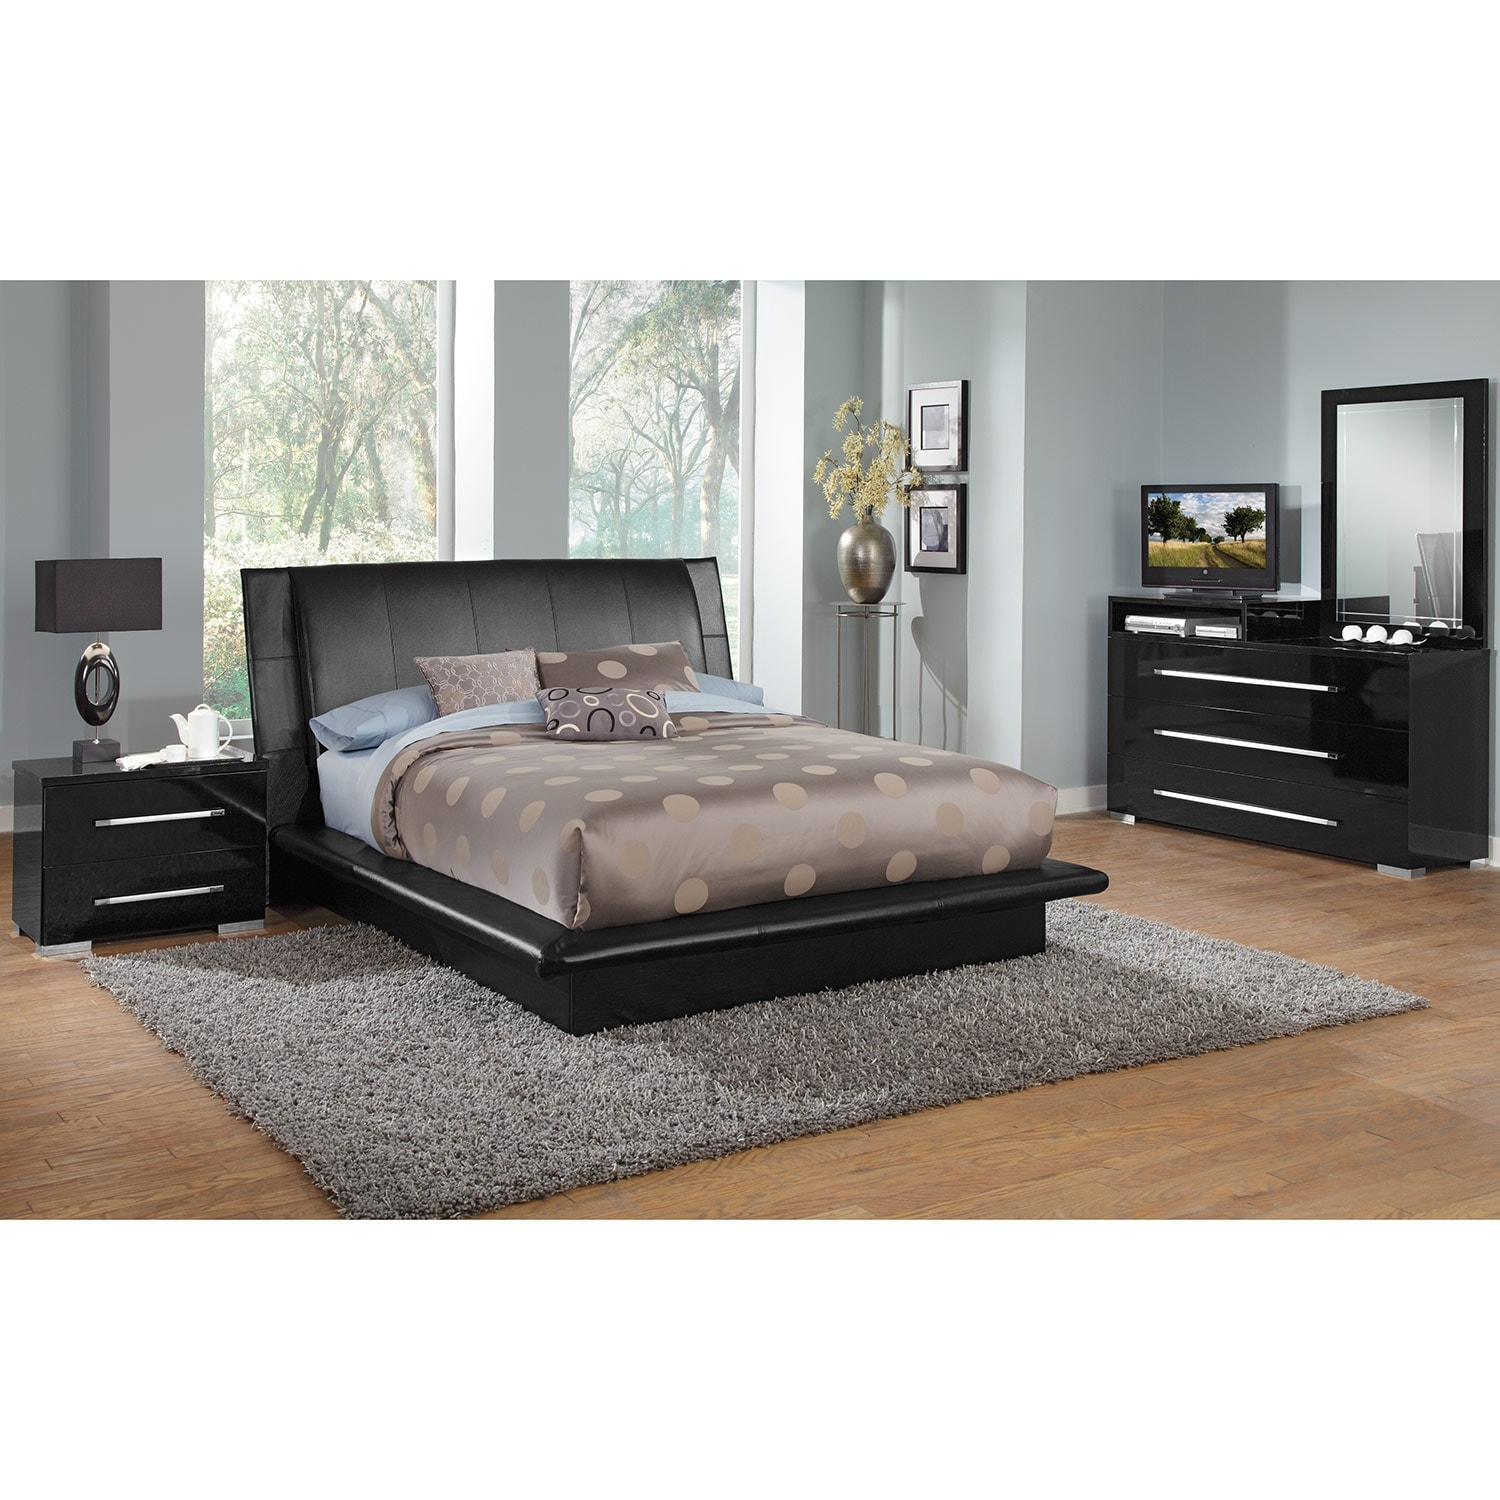 Dimora black queen bed value city furniture for Bedroom furniture beds